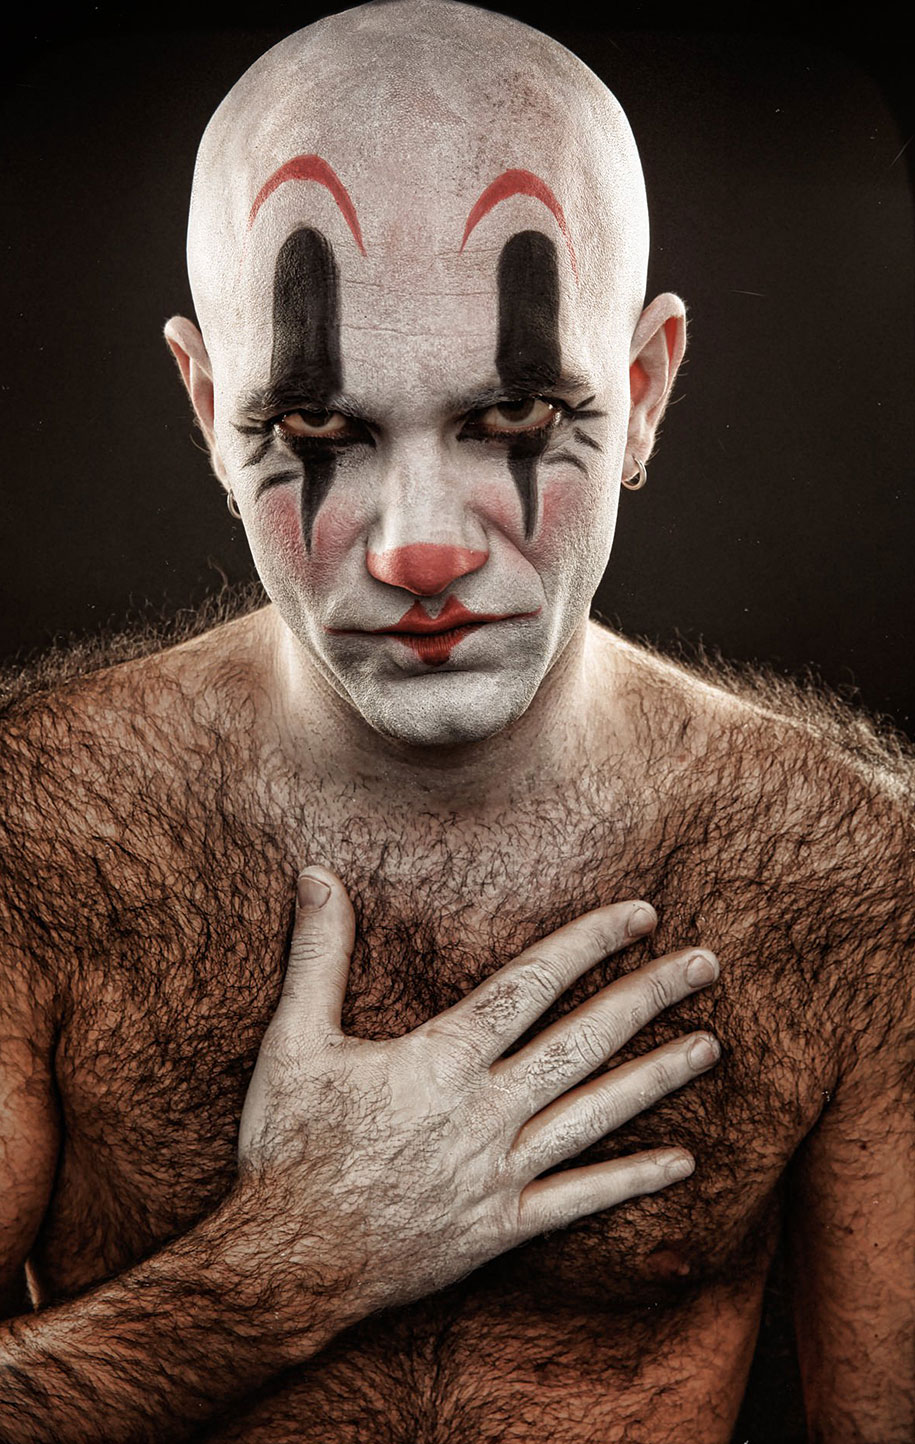 macabre-scary-clown-portraits-clownville-eolo-perfido-17